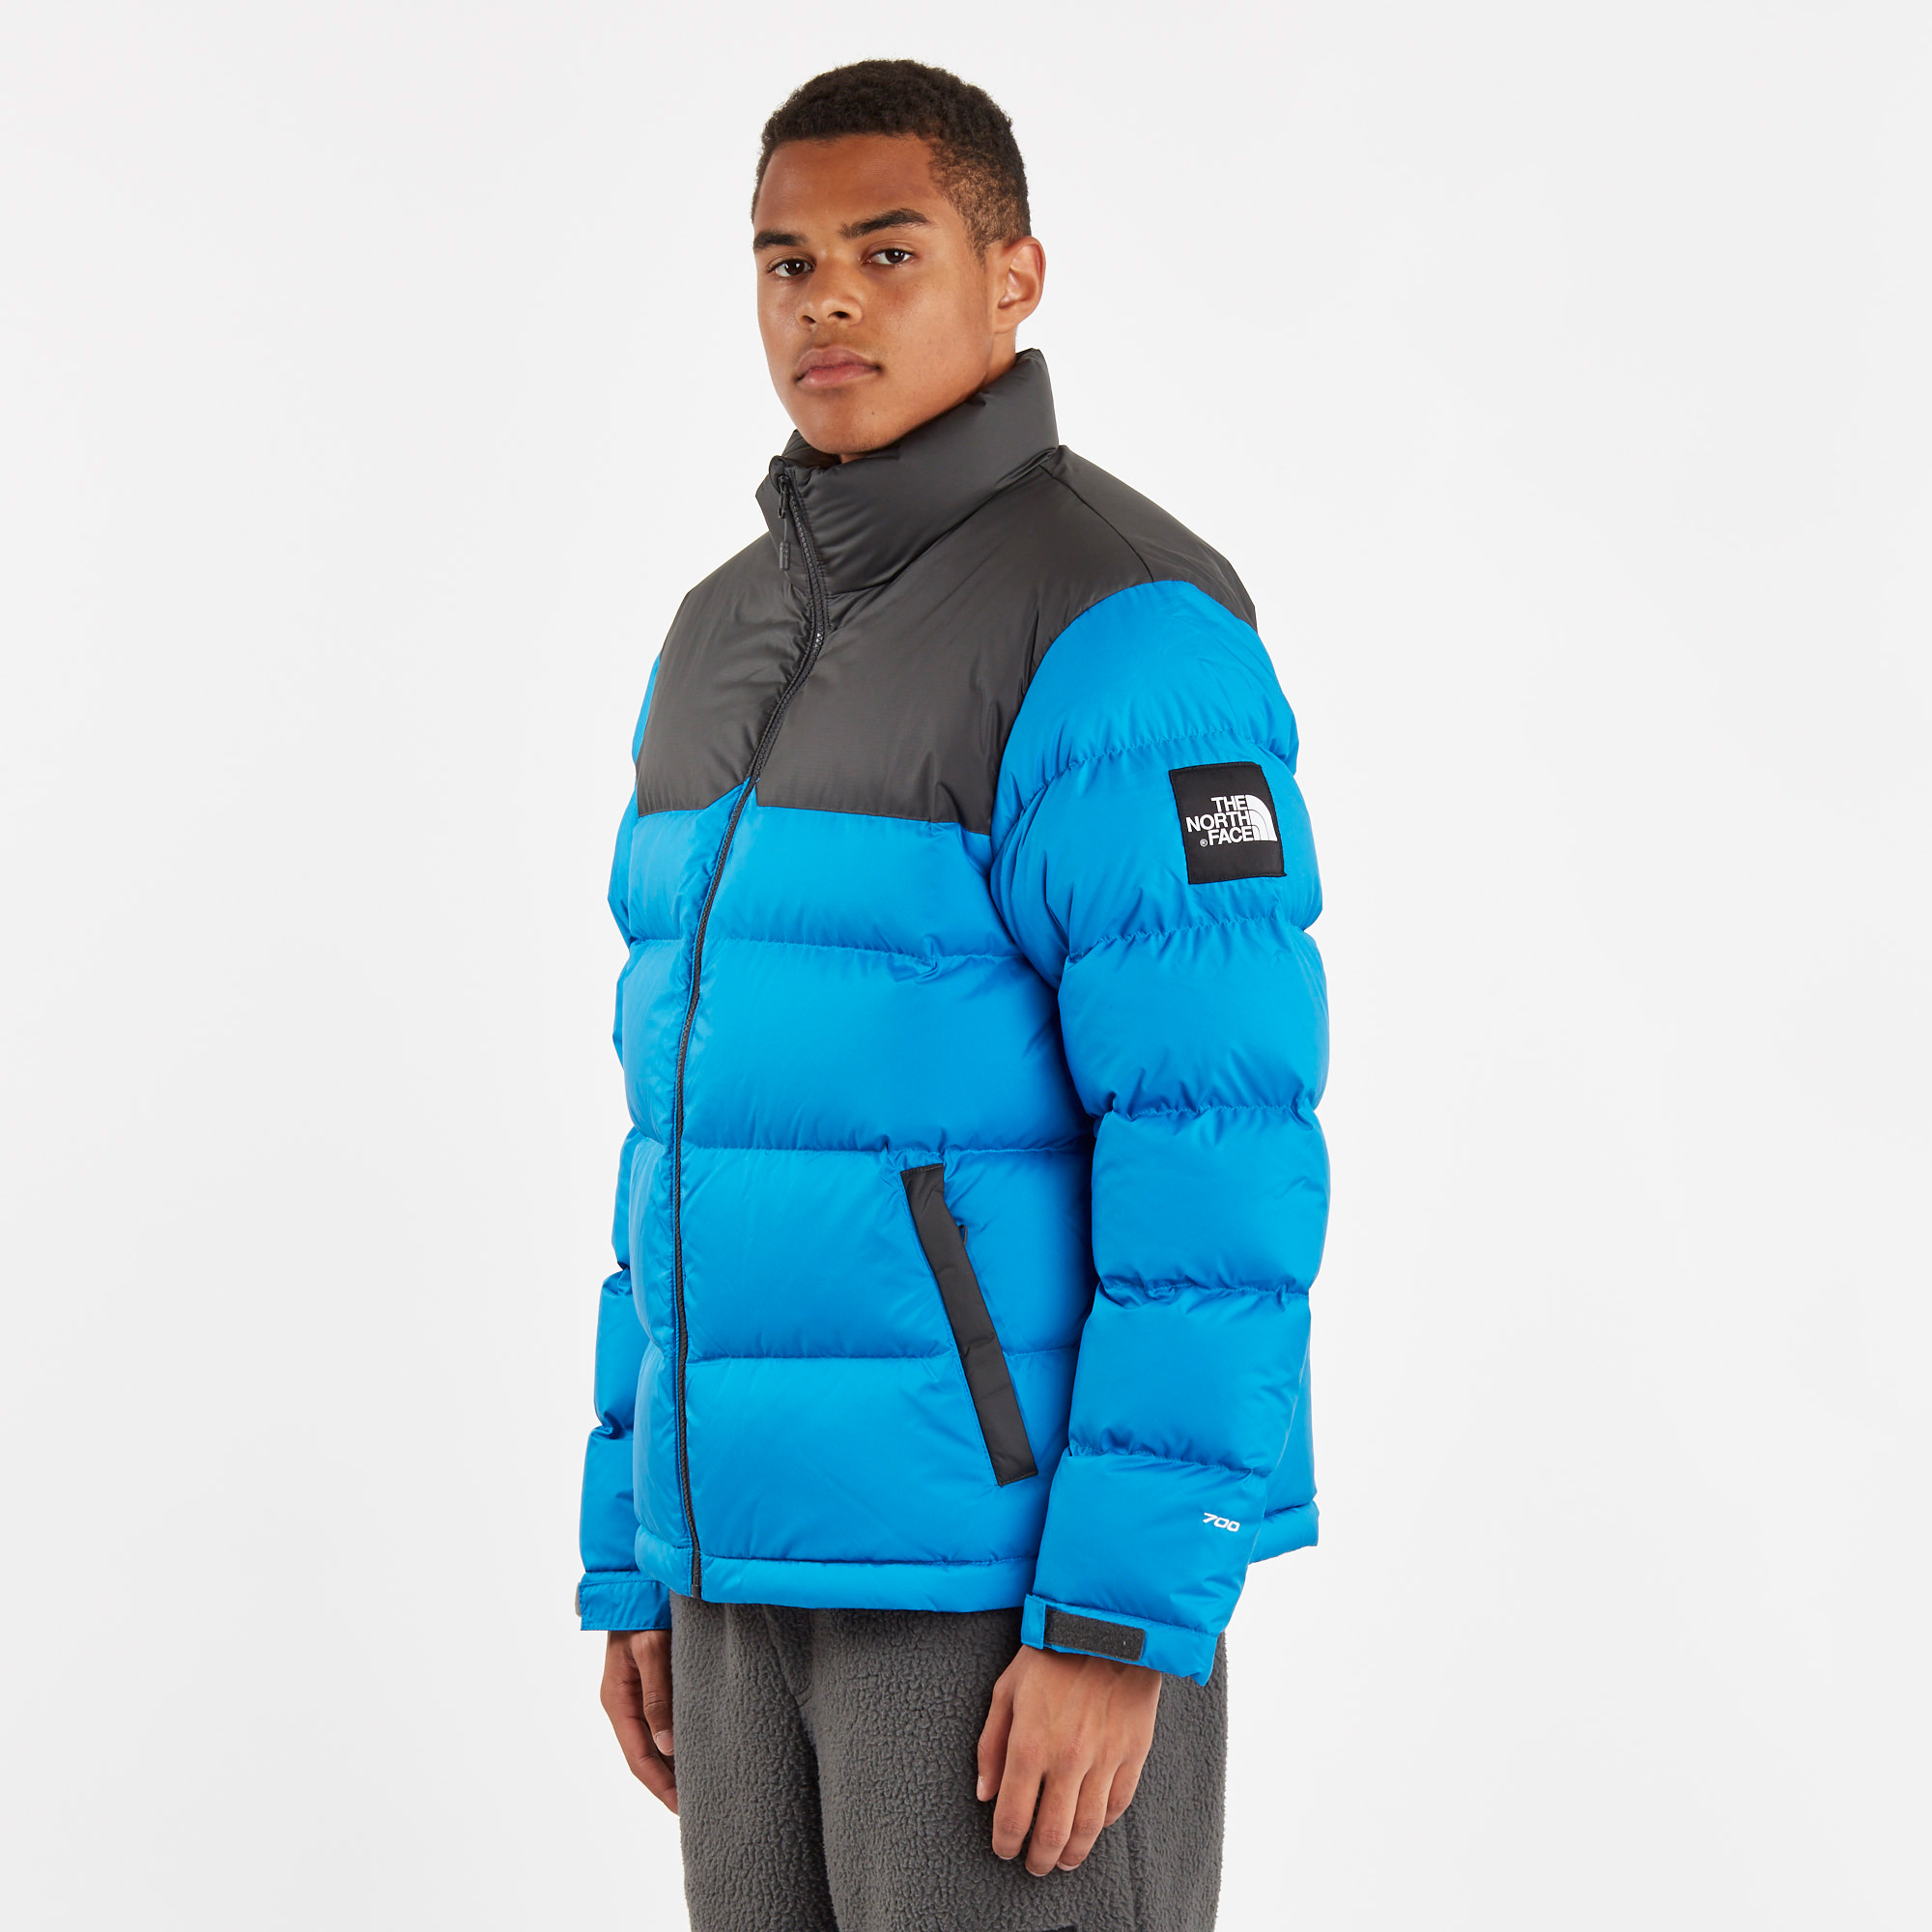 a147dc3f9 The North Face M 1992 Nuptse Jacket - T92zweaa2 - Sneakersnstuff ...